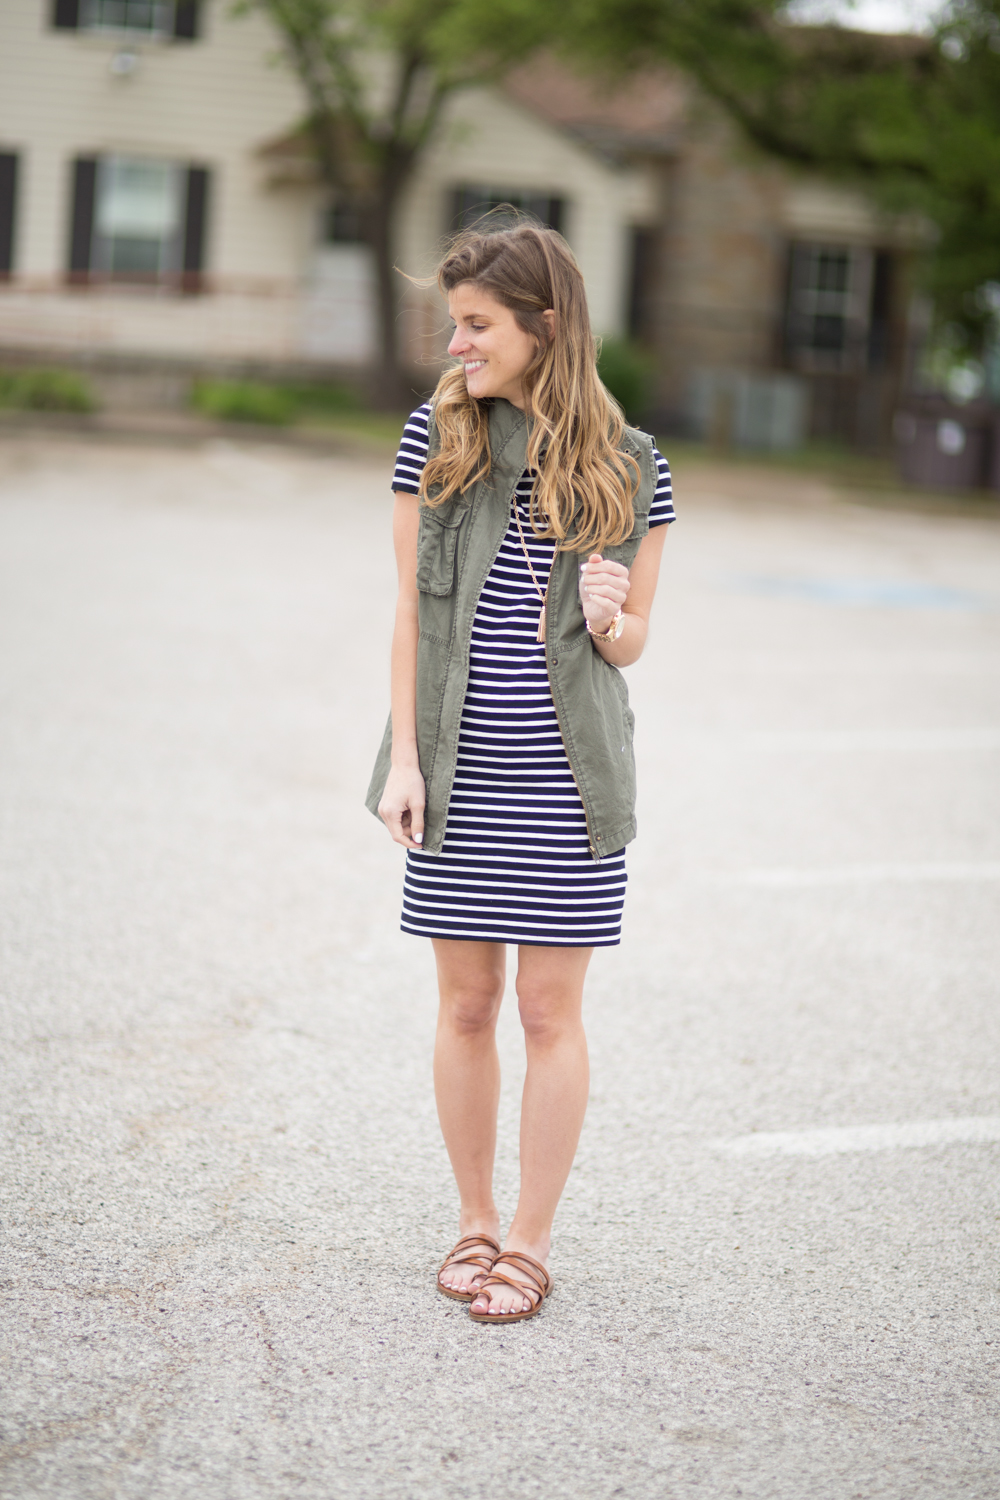 9e1f7dc4d6f Striped Dress Outfit Ideas - 3 Ways To Style a Striped Dress